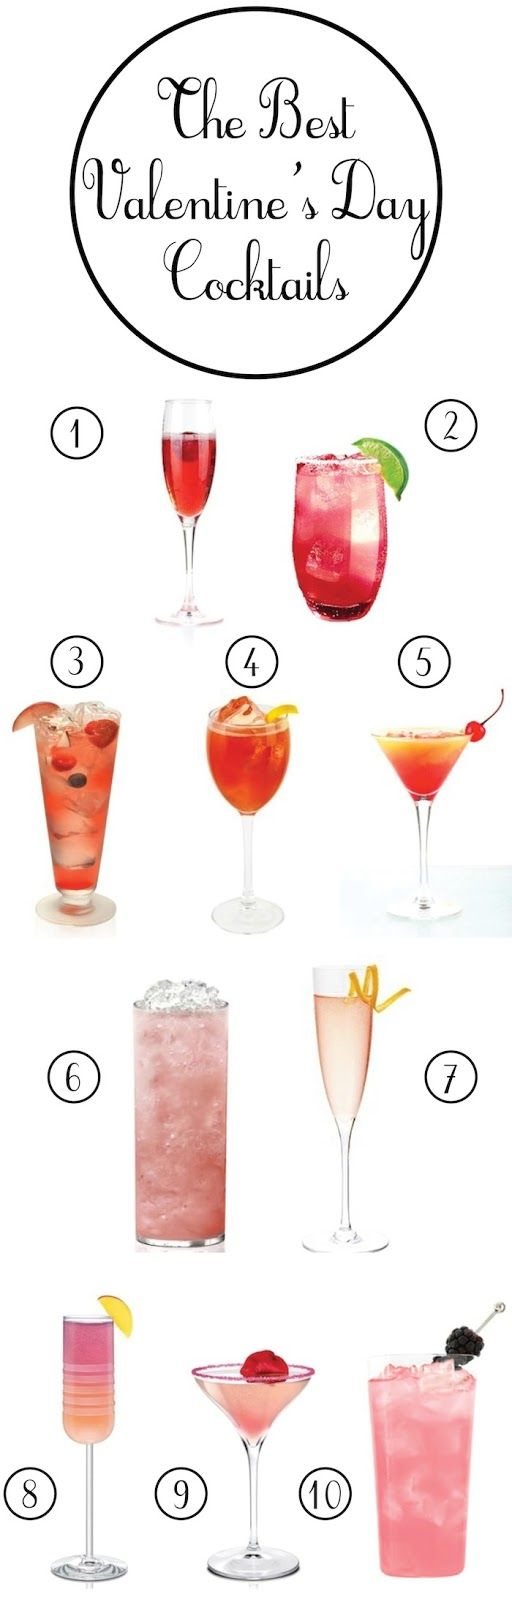 The Best Valentines Day Cocktails